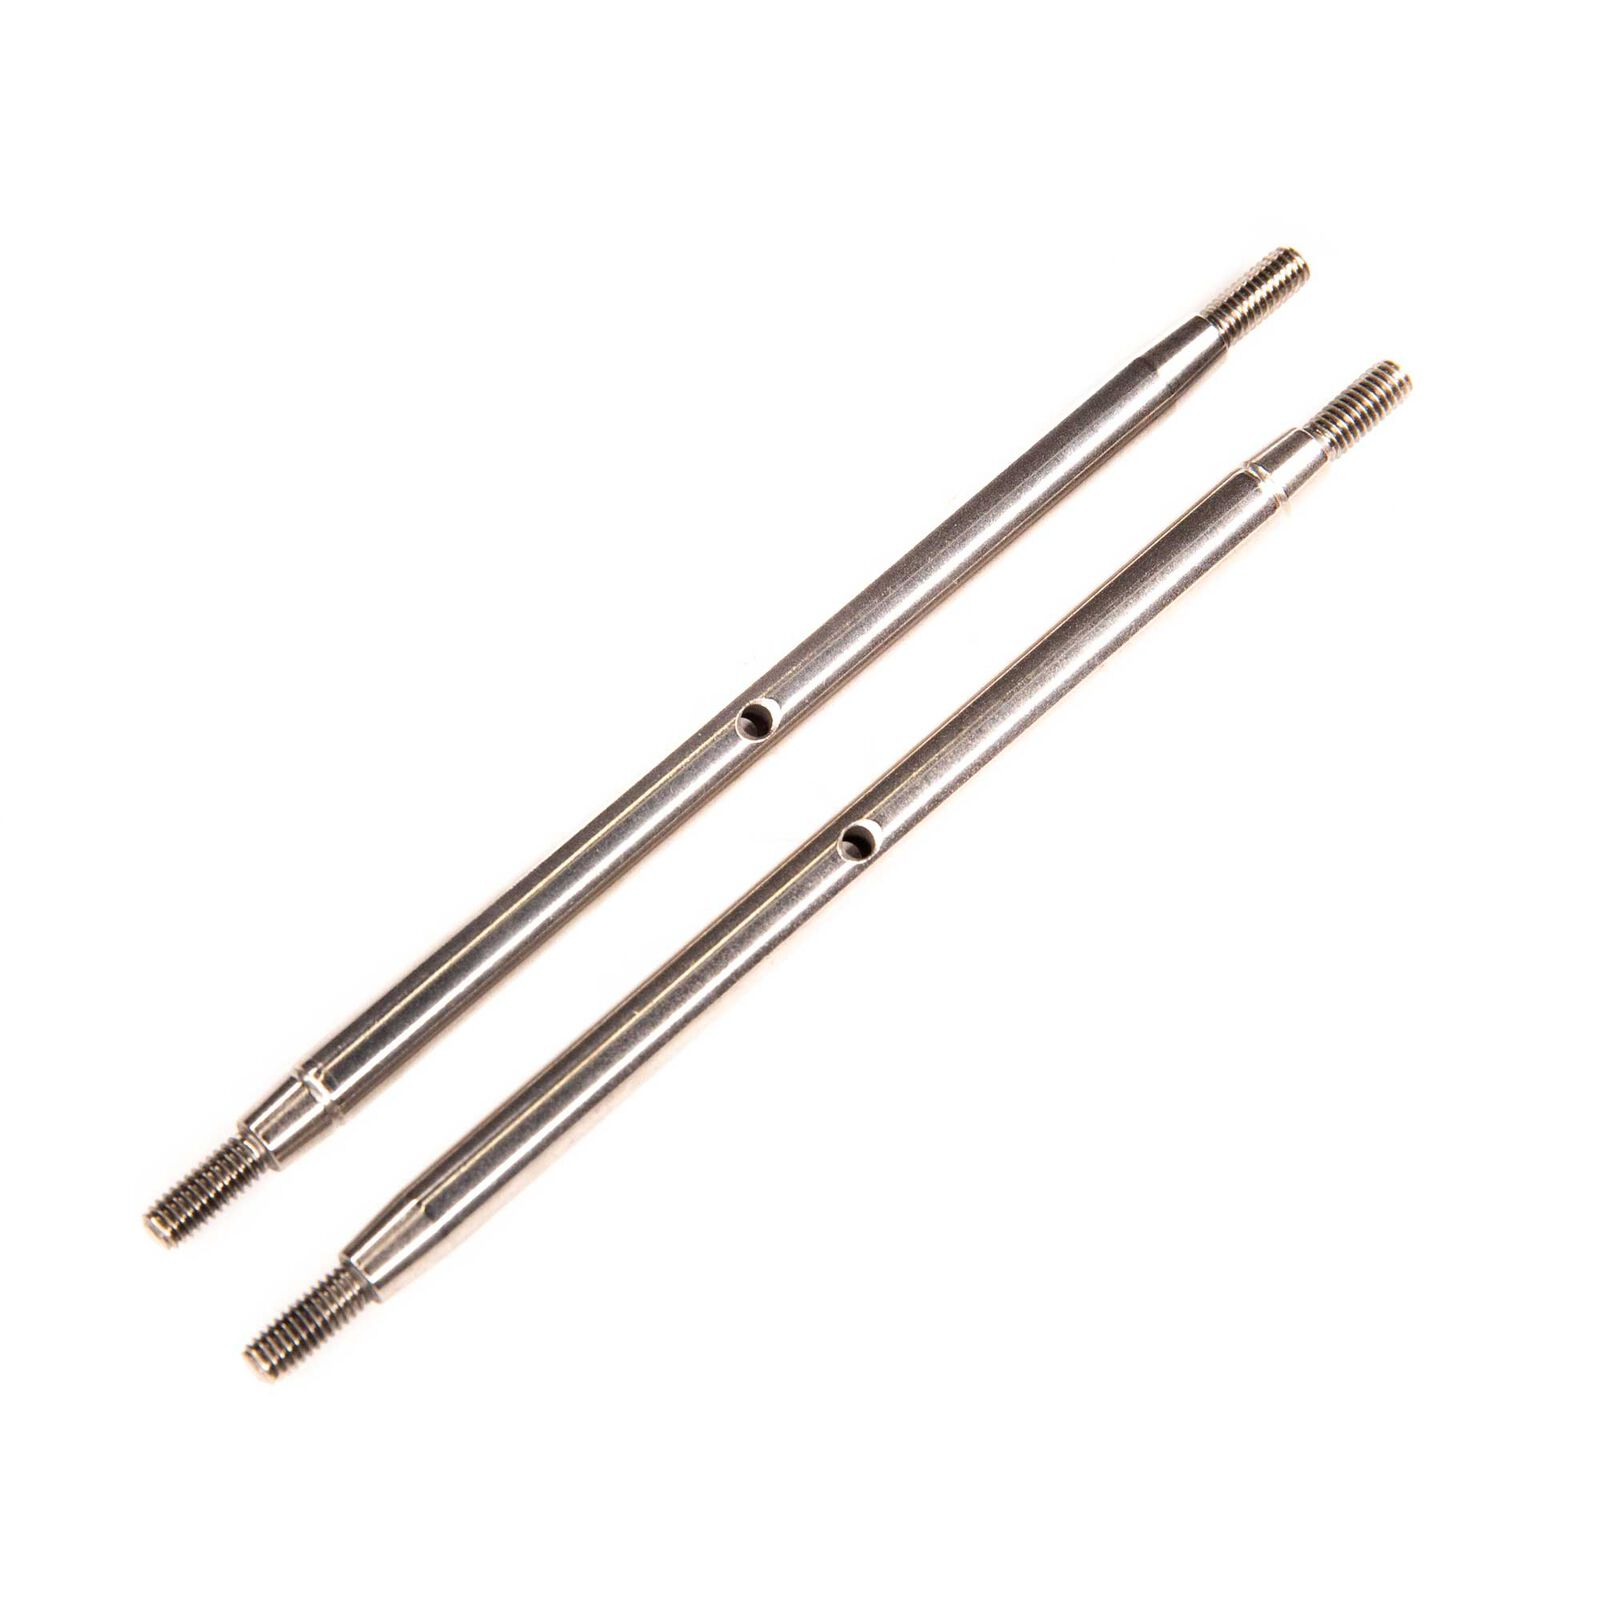 Stainless Steel M6x 117mm Link (2): SCX10 III